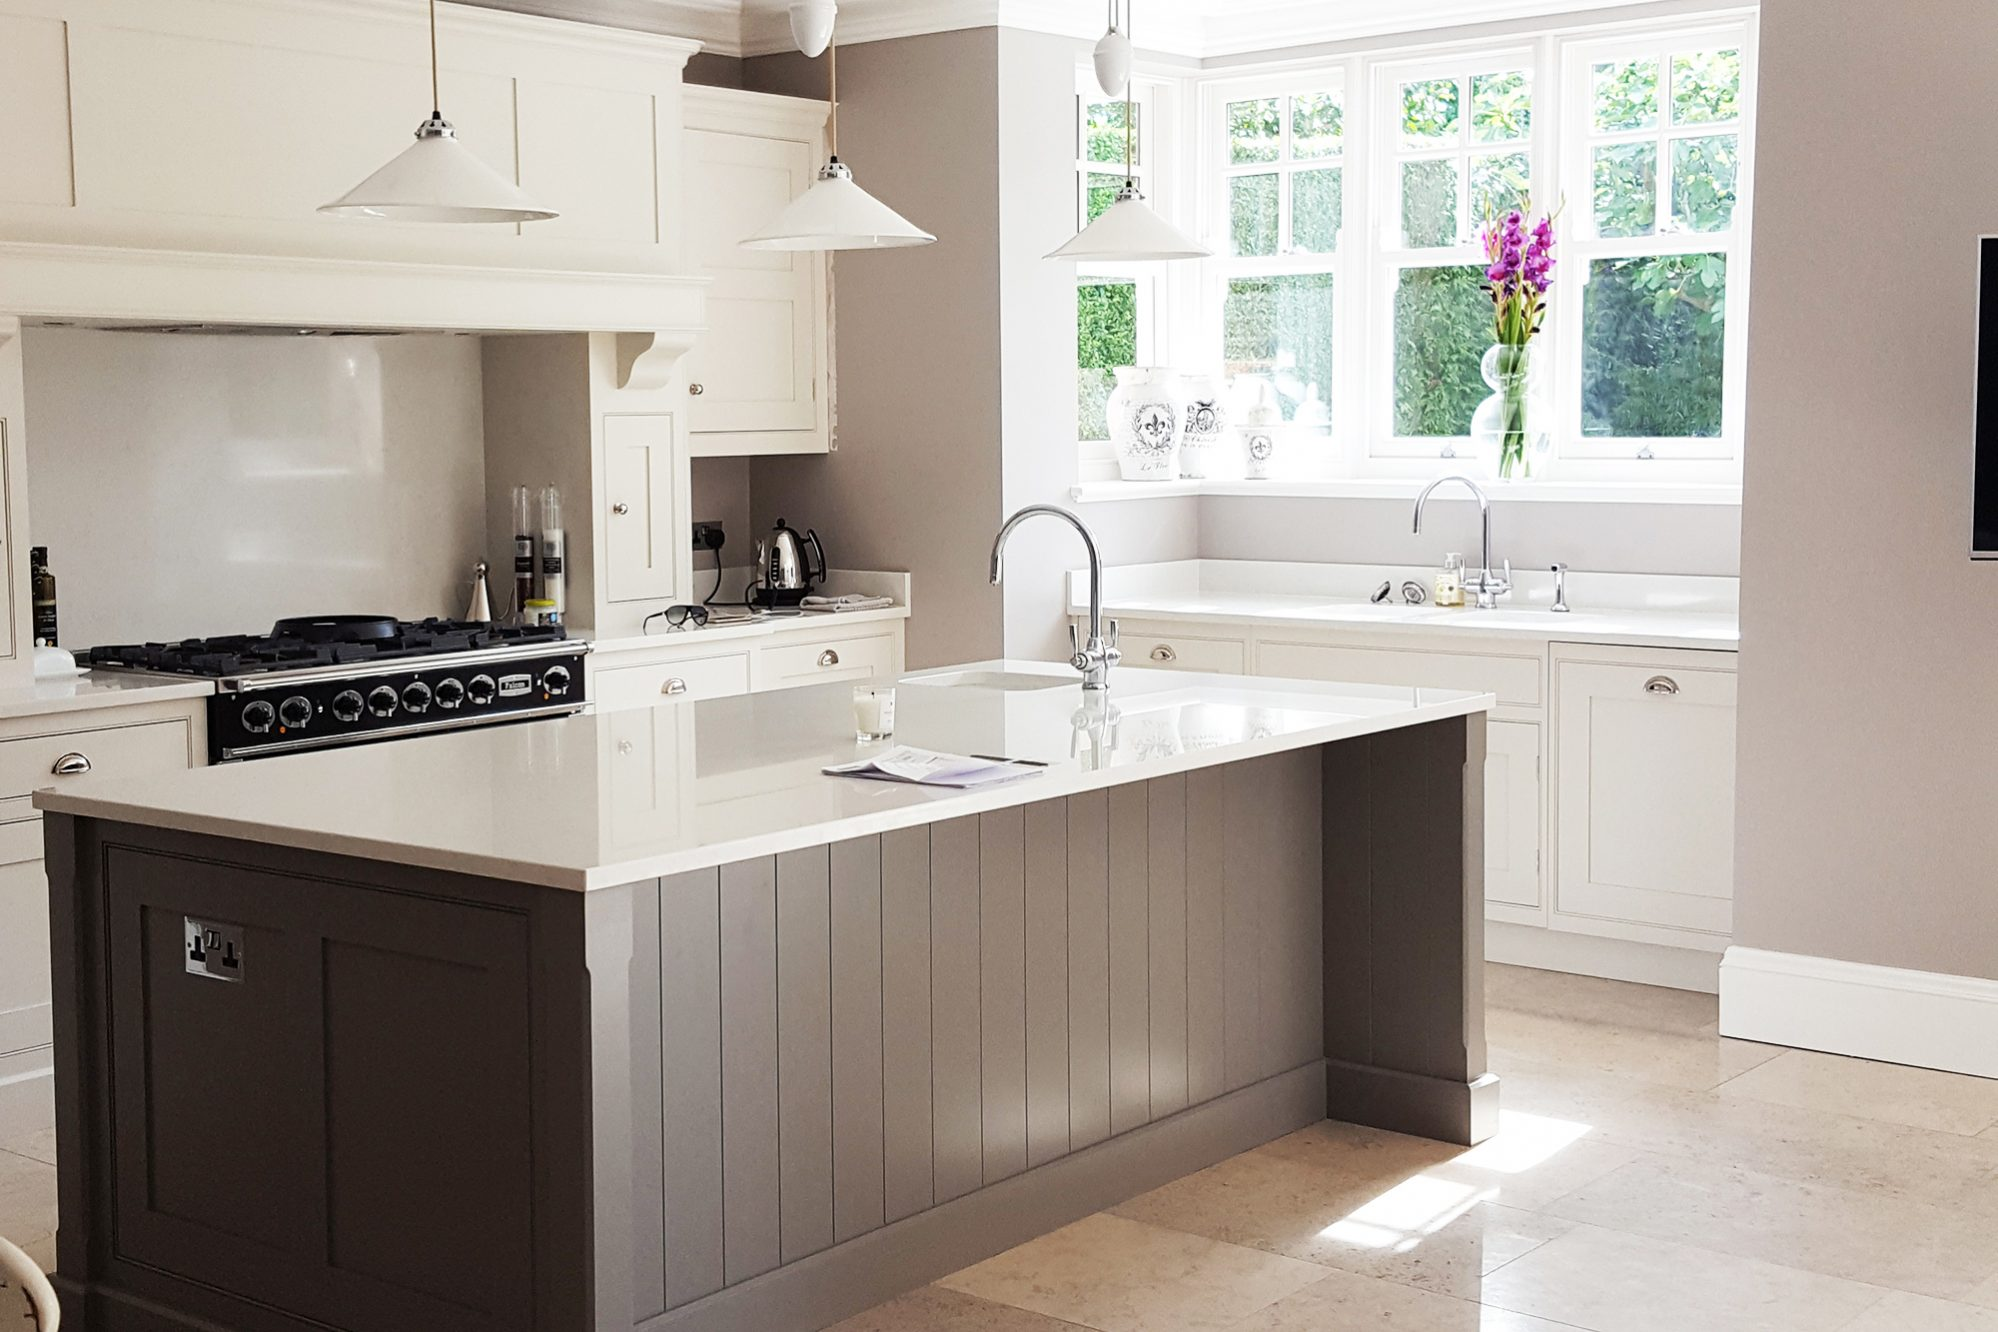 Bespoke Kitchen Design Model armstrong jordan bespoke kitchens – interiors for the finest homes